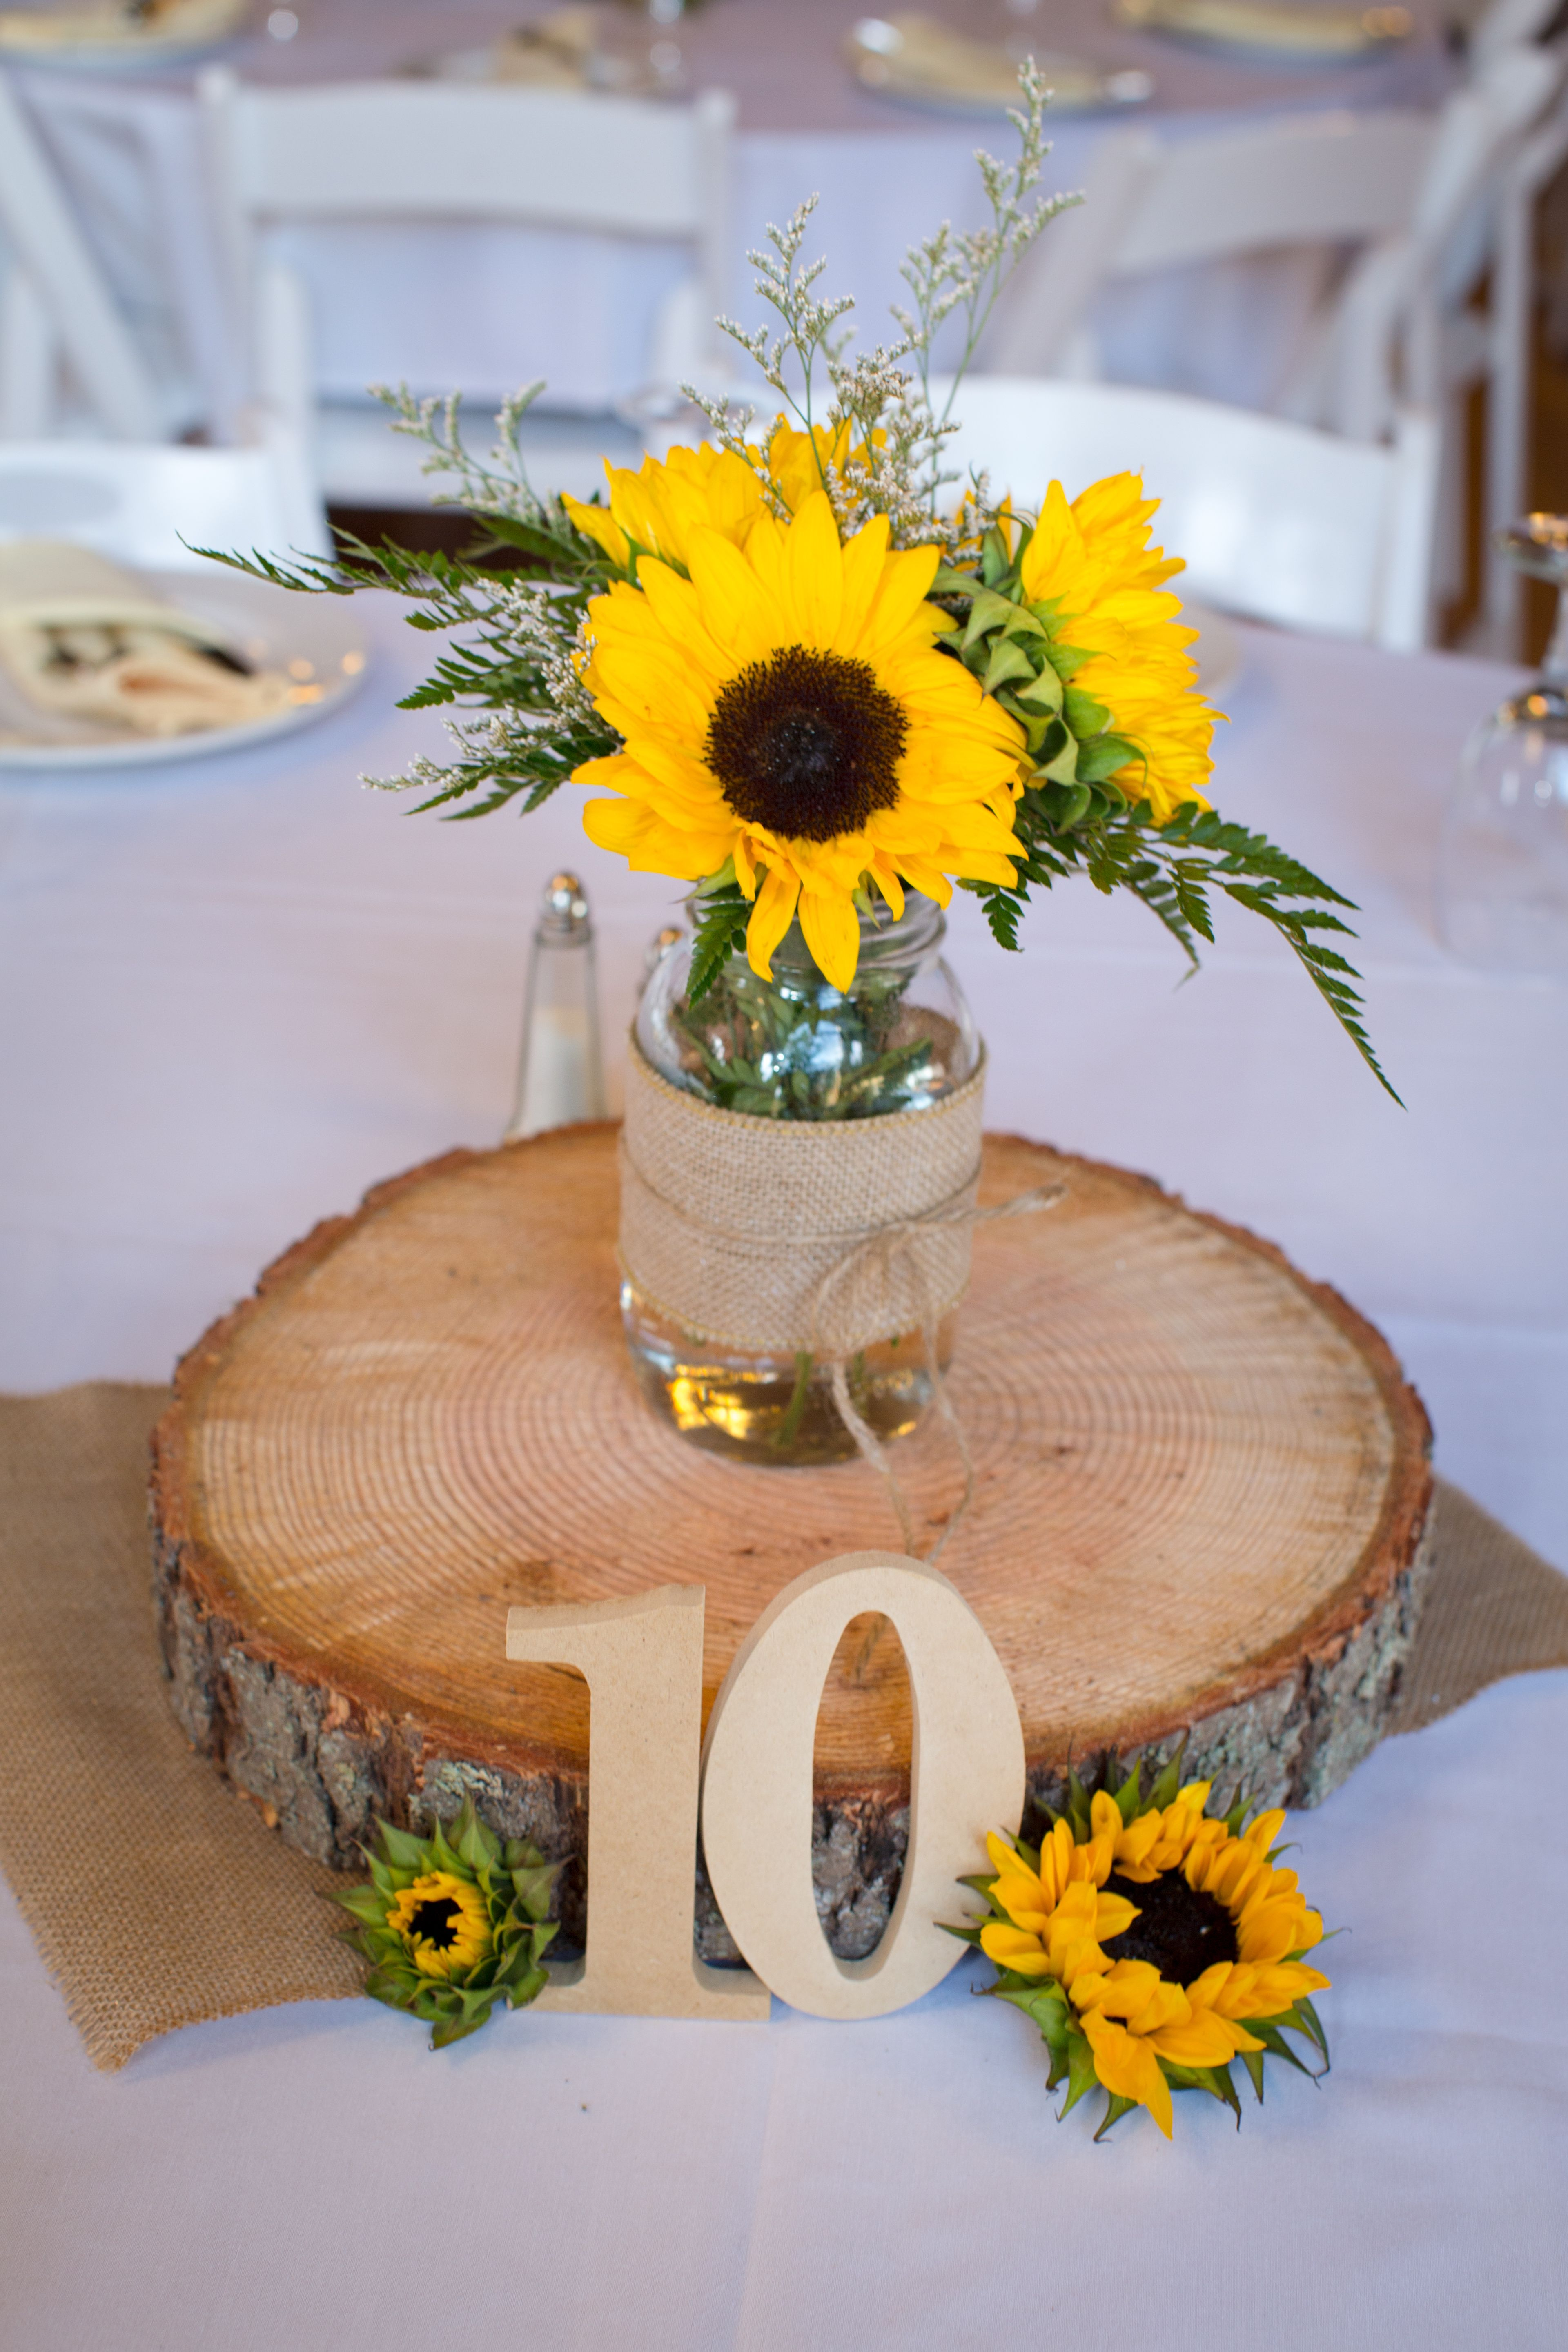 Wooden Slab Centerpiece And Table Number Sunflower Themed Wedding Rustic Sunflower Wedding Sunflower Wedding Centerpieces